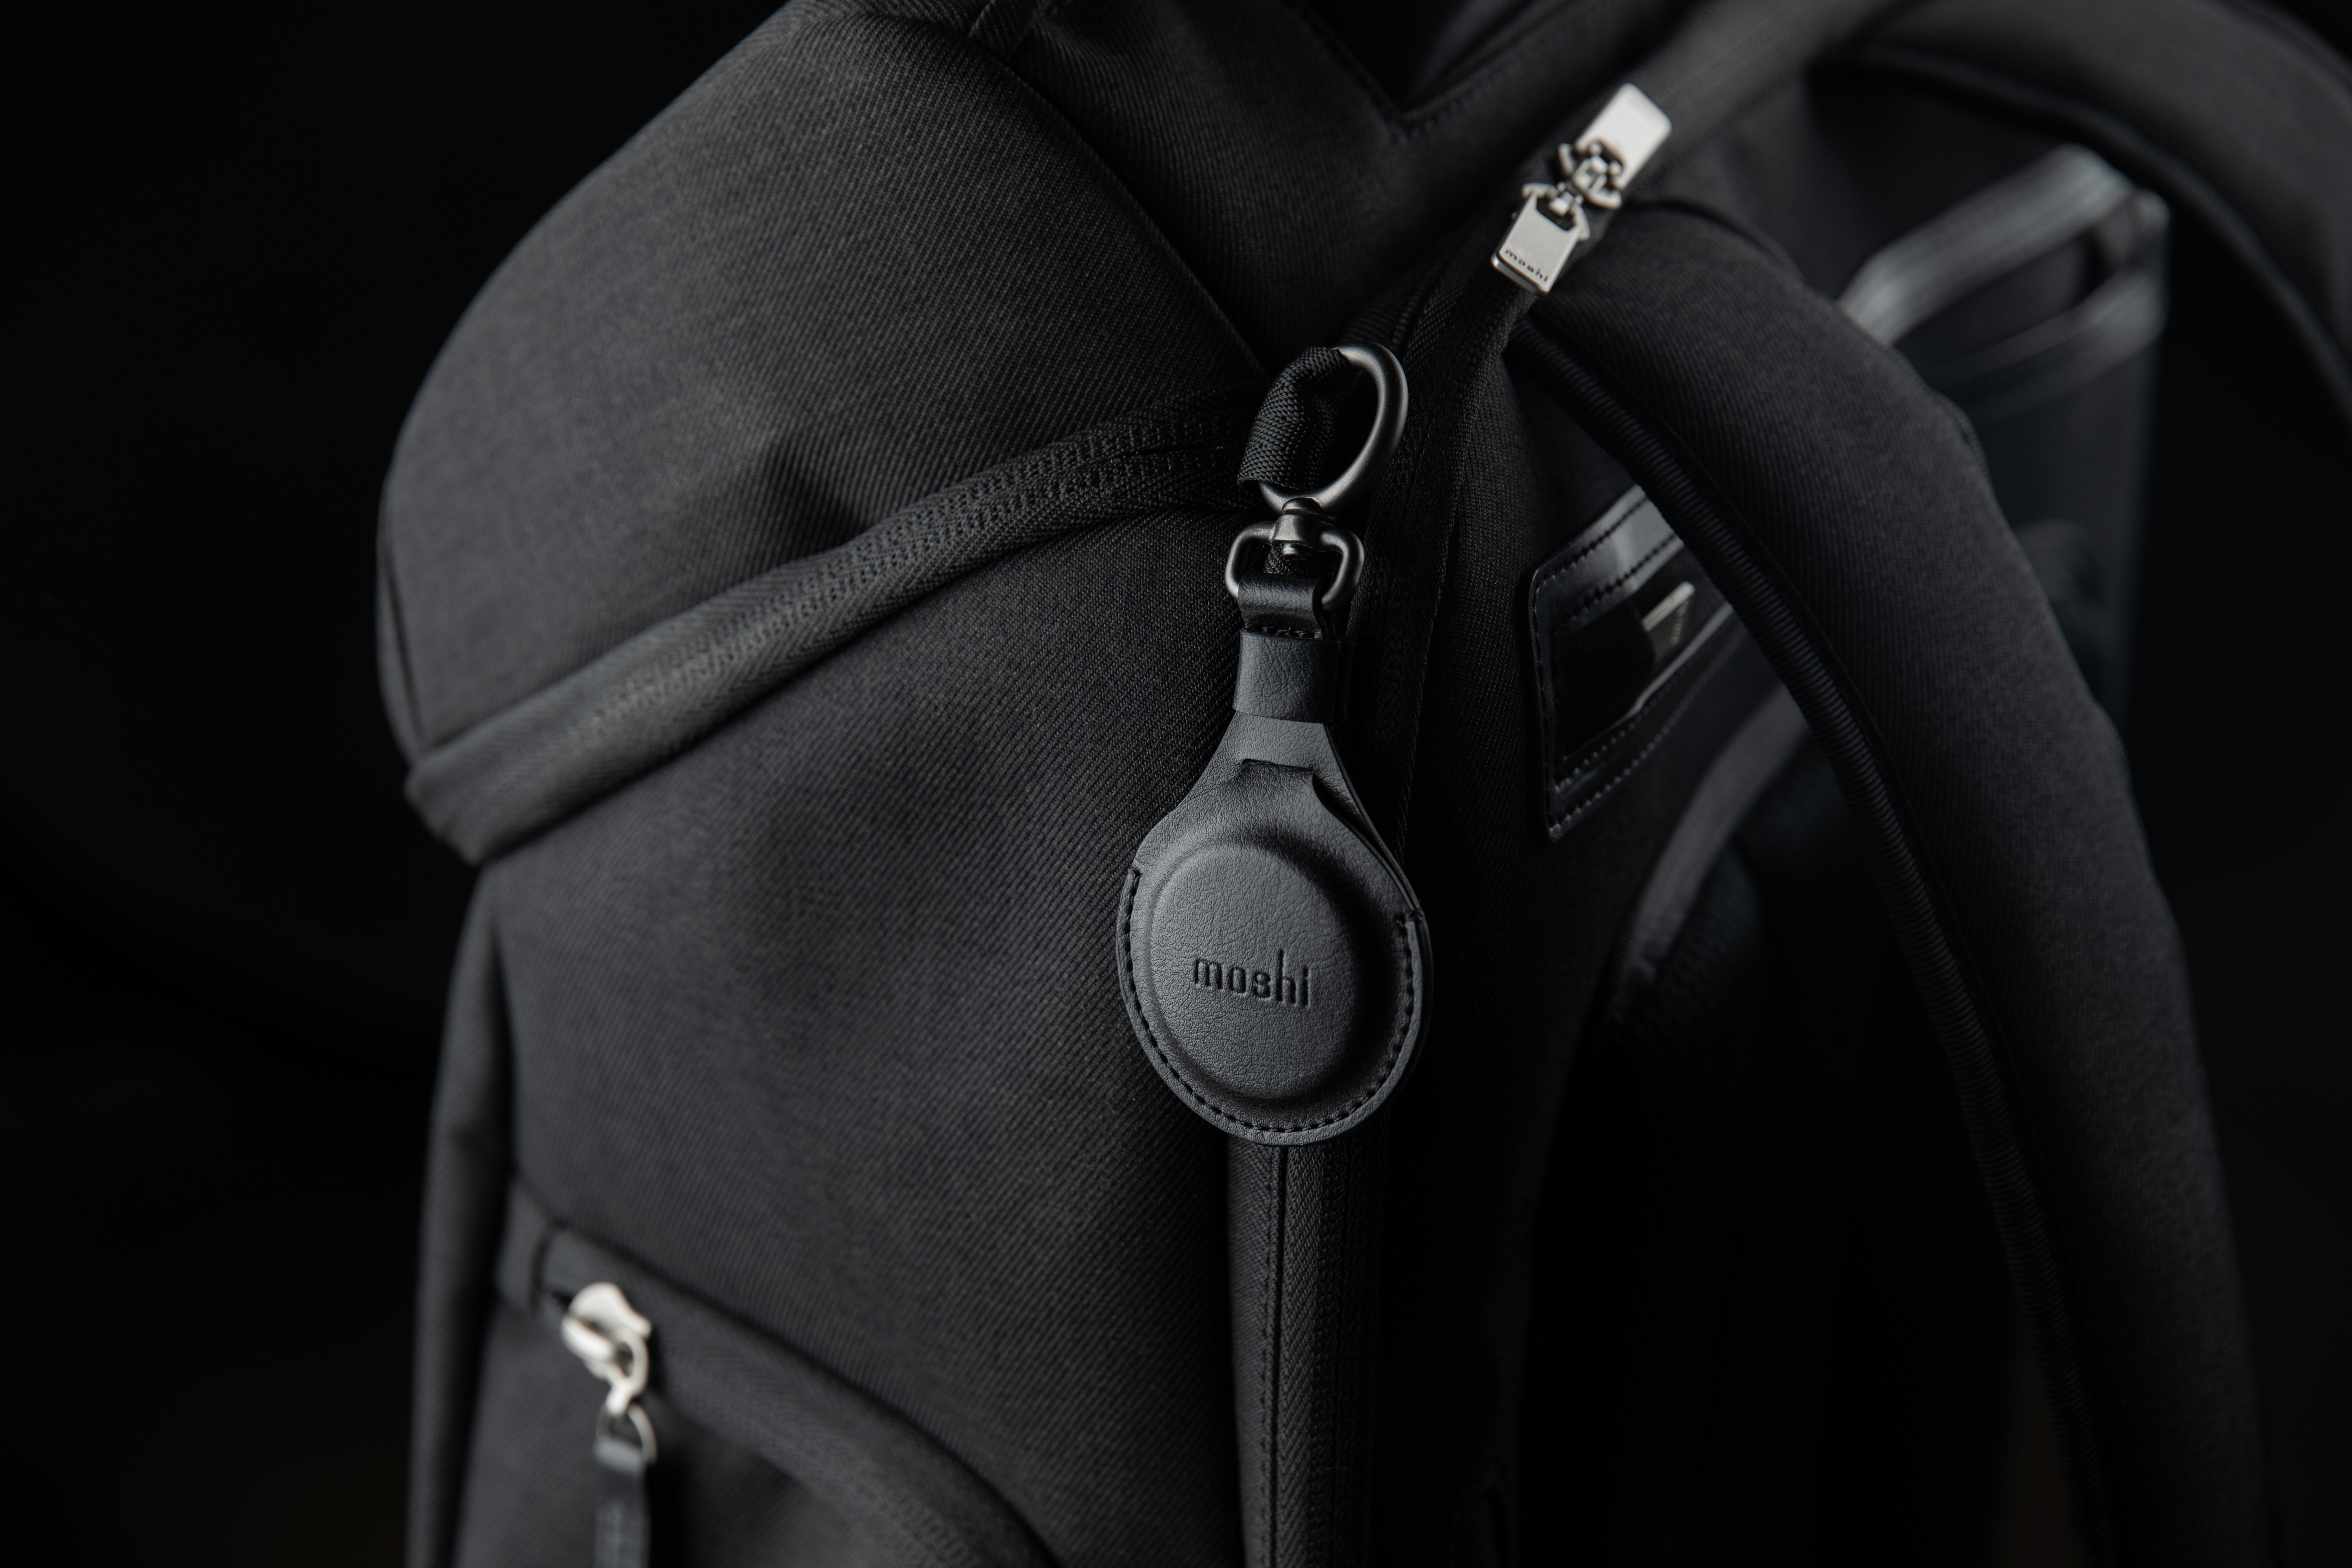 A Moshi backpack with an AirTag Key Ring attached